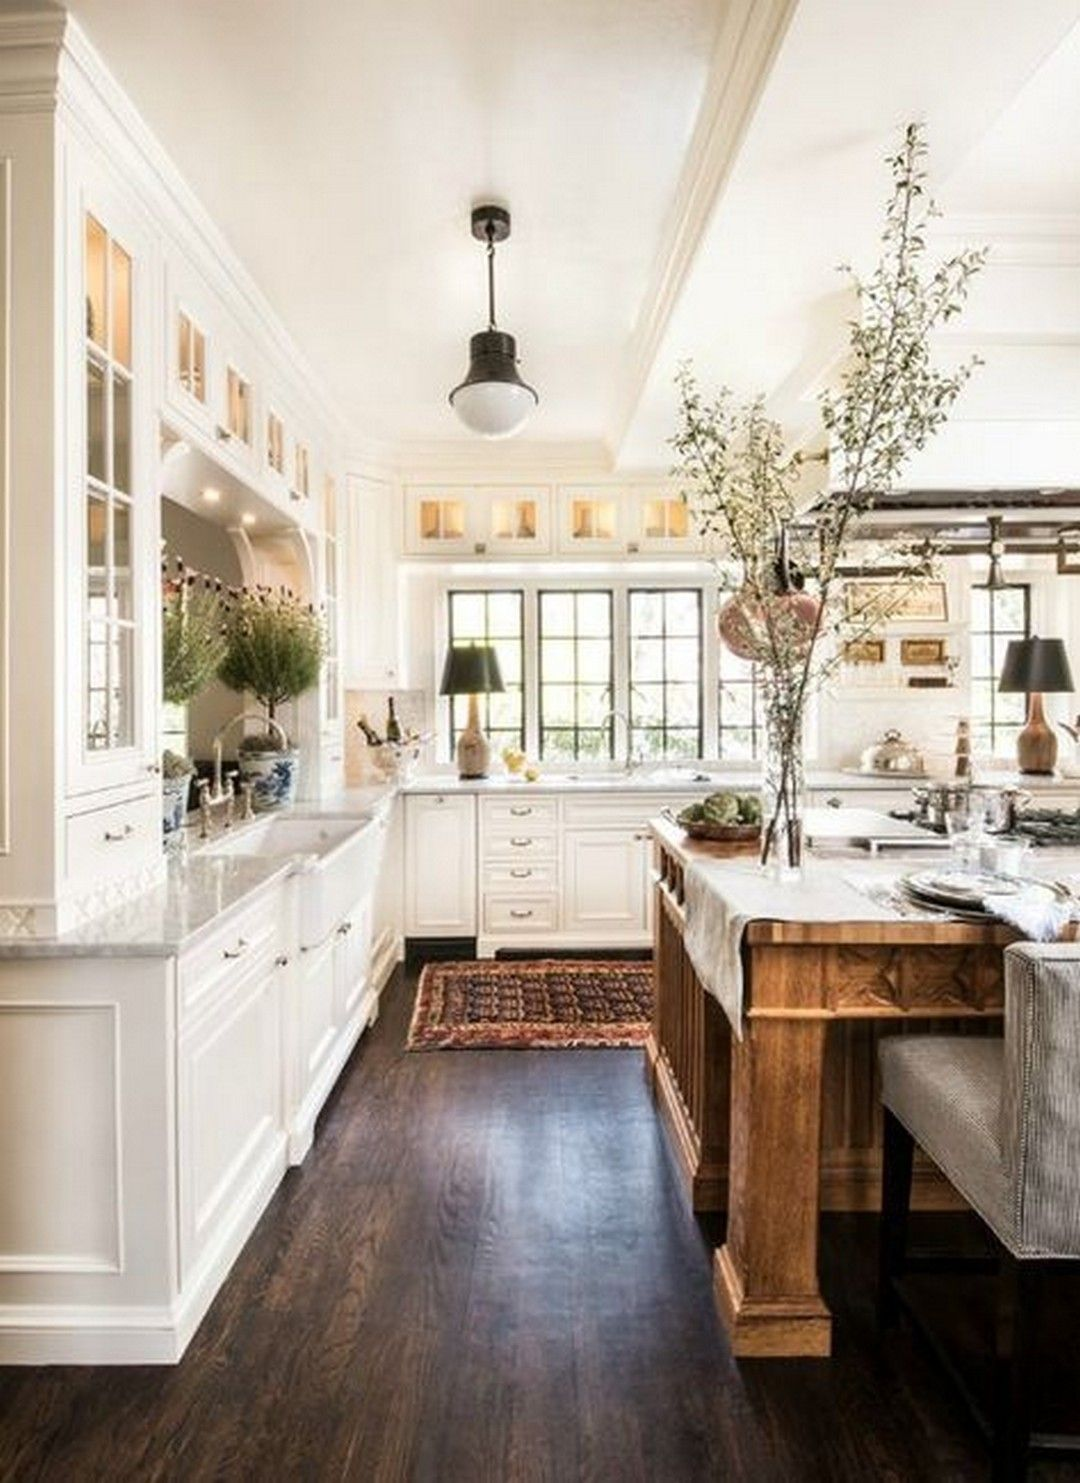 Best Farmhouse Kitchen Ideas On A Budget For 2018 Farmhouse 400 x 300